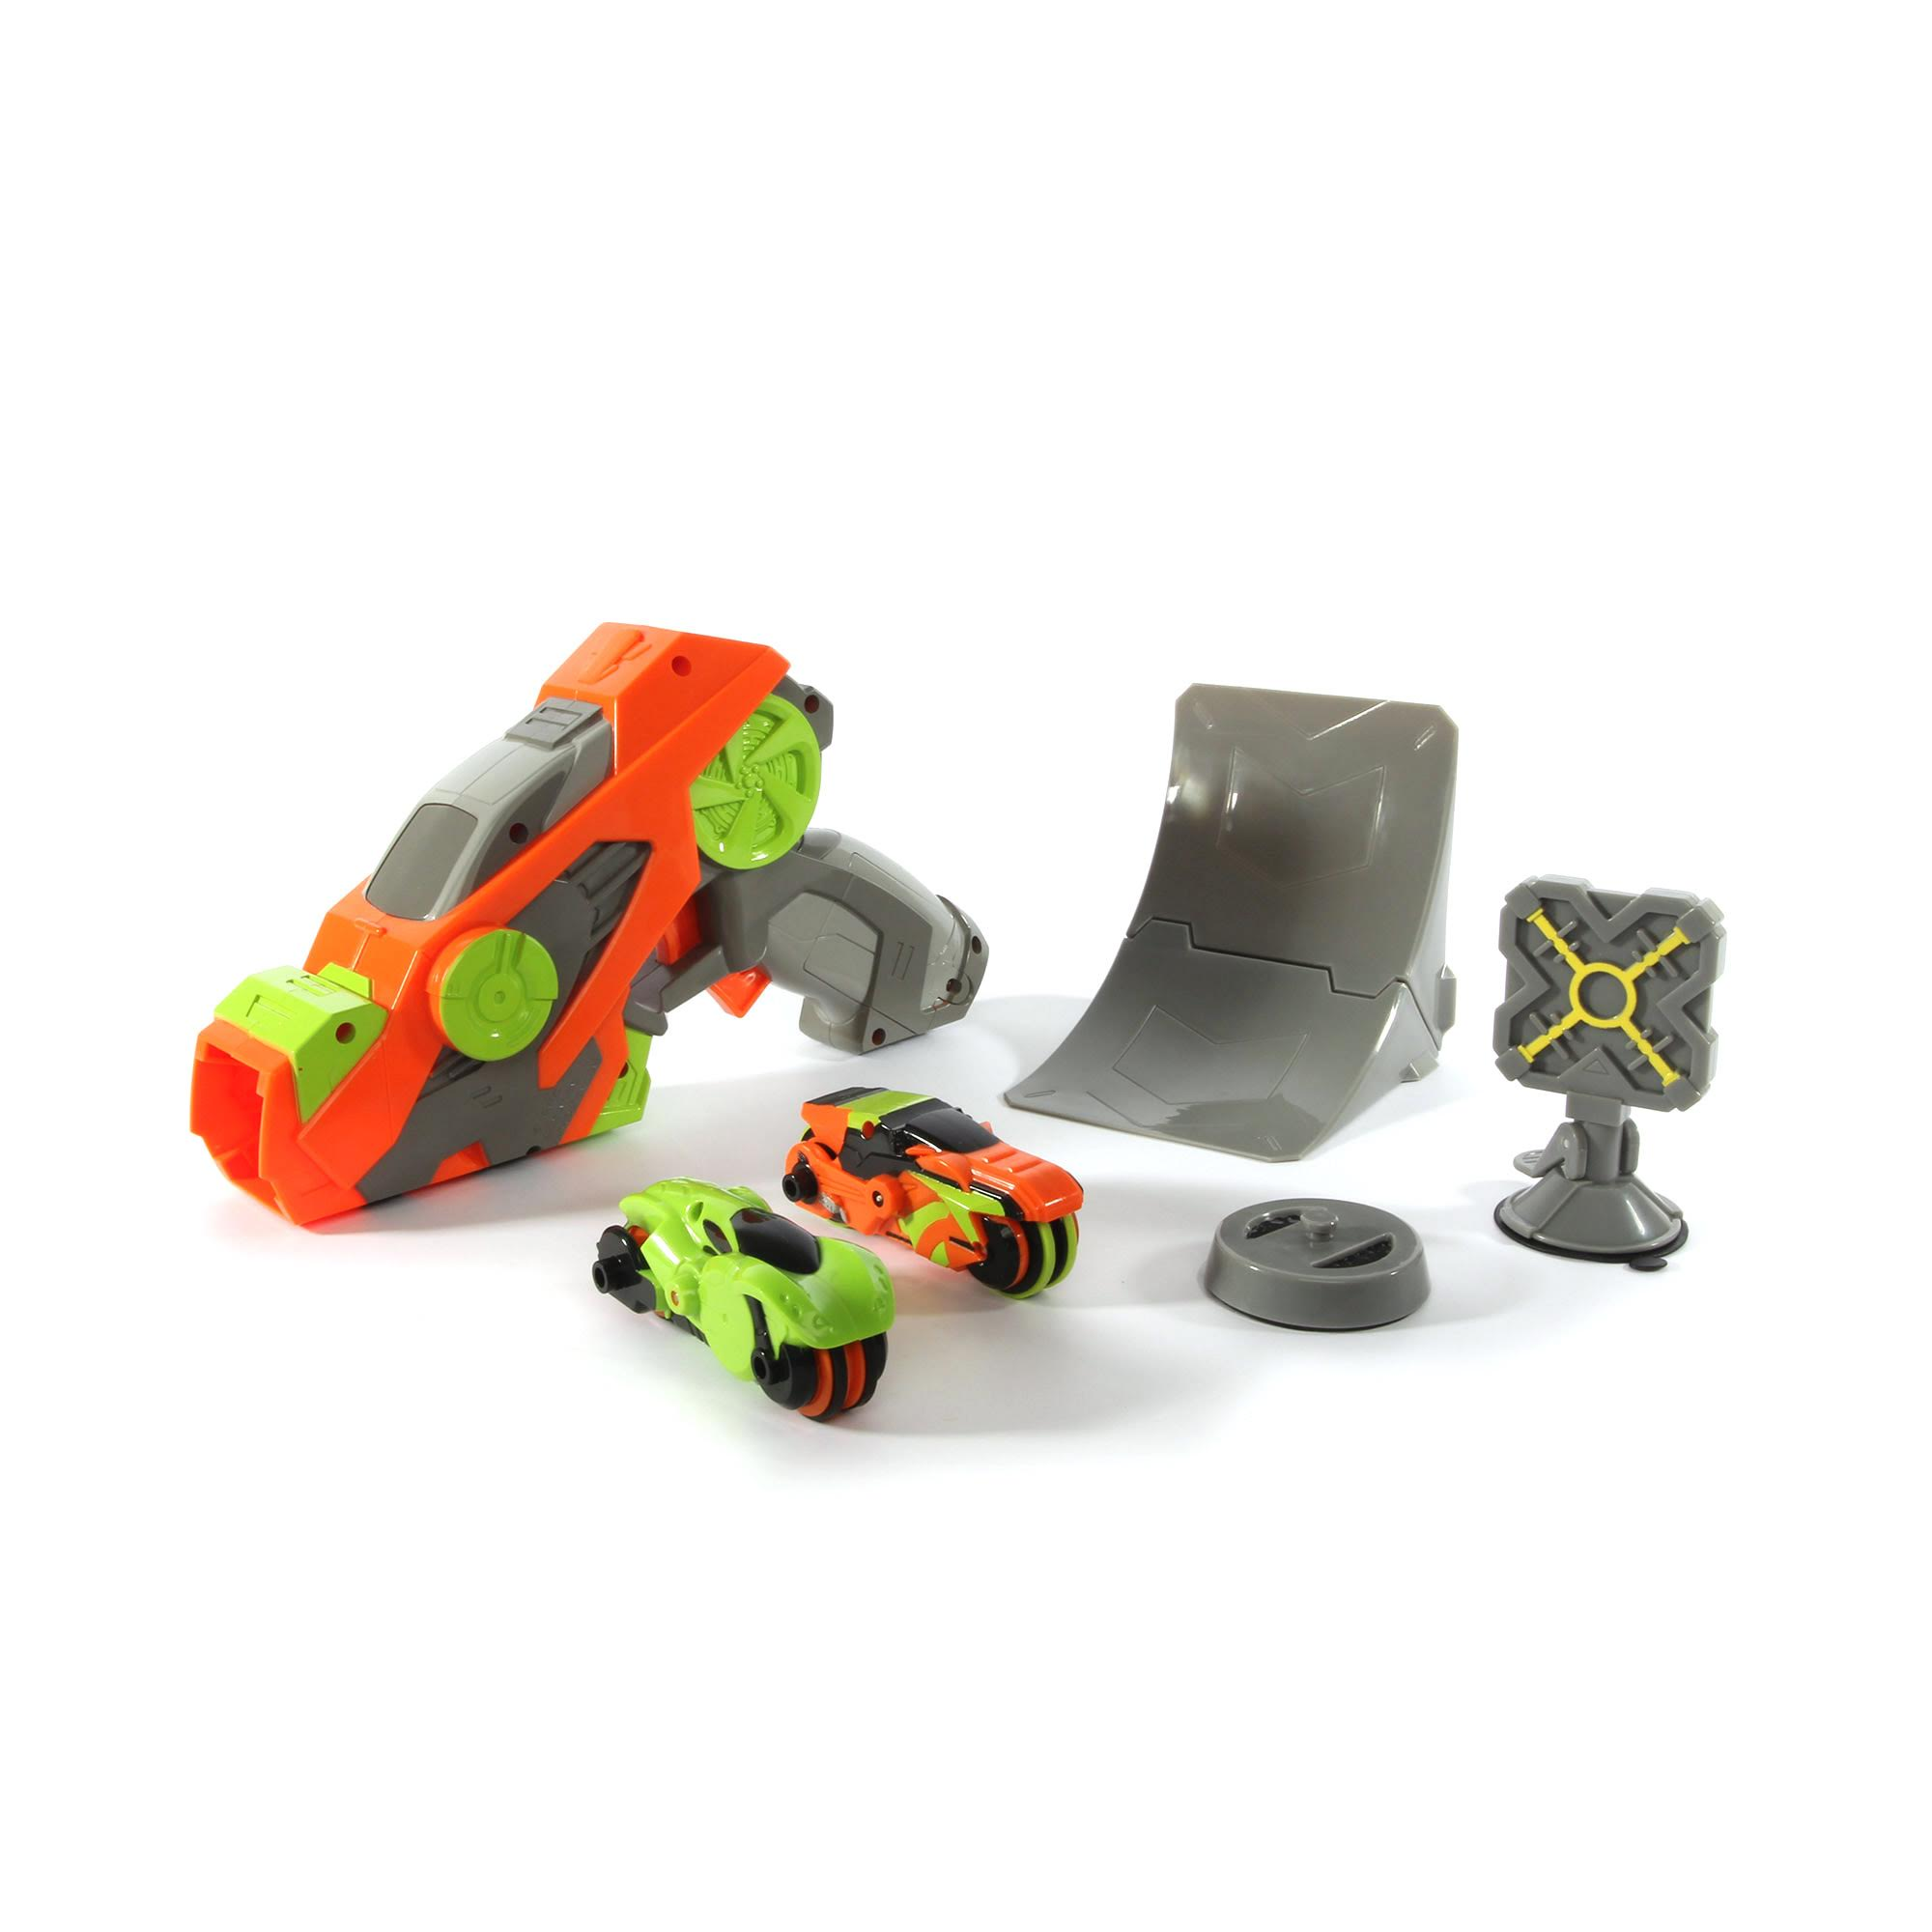 Blip Toys Launches Street Shots Racers The Ultimate Toy Vehicle